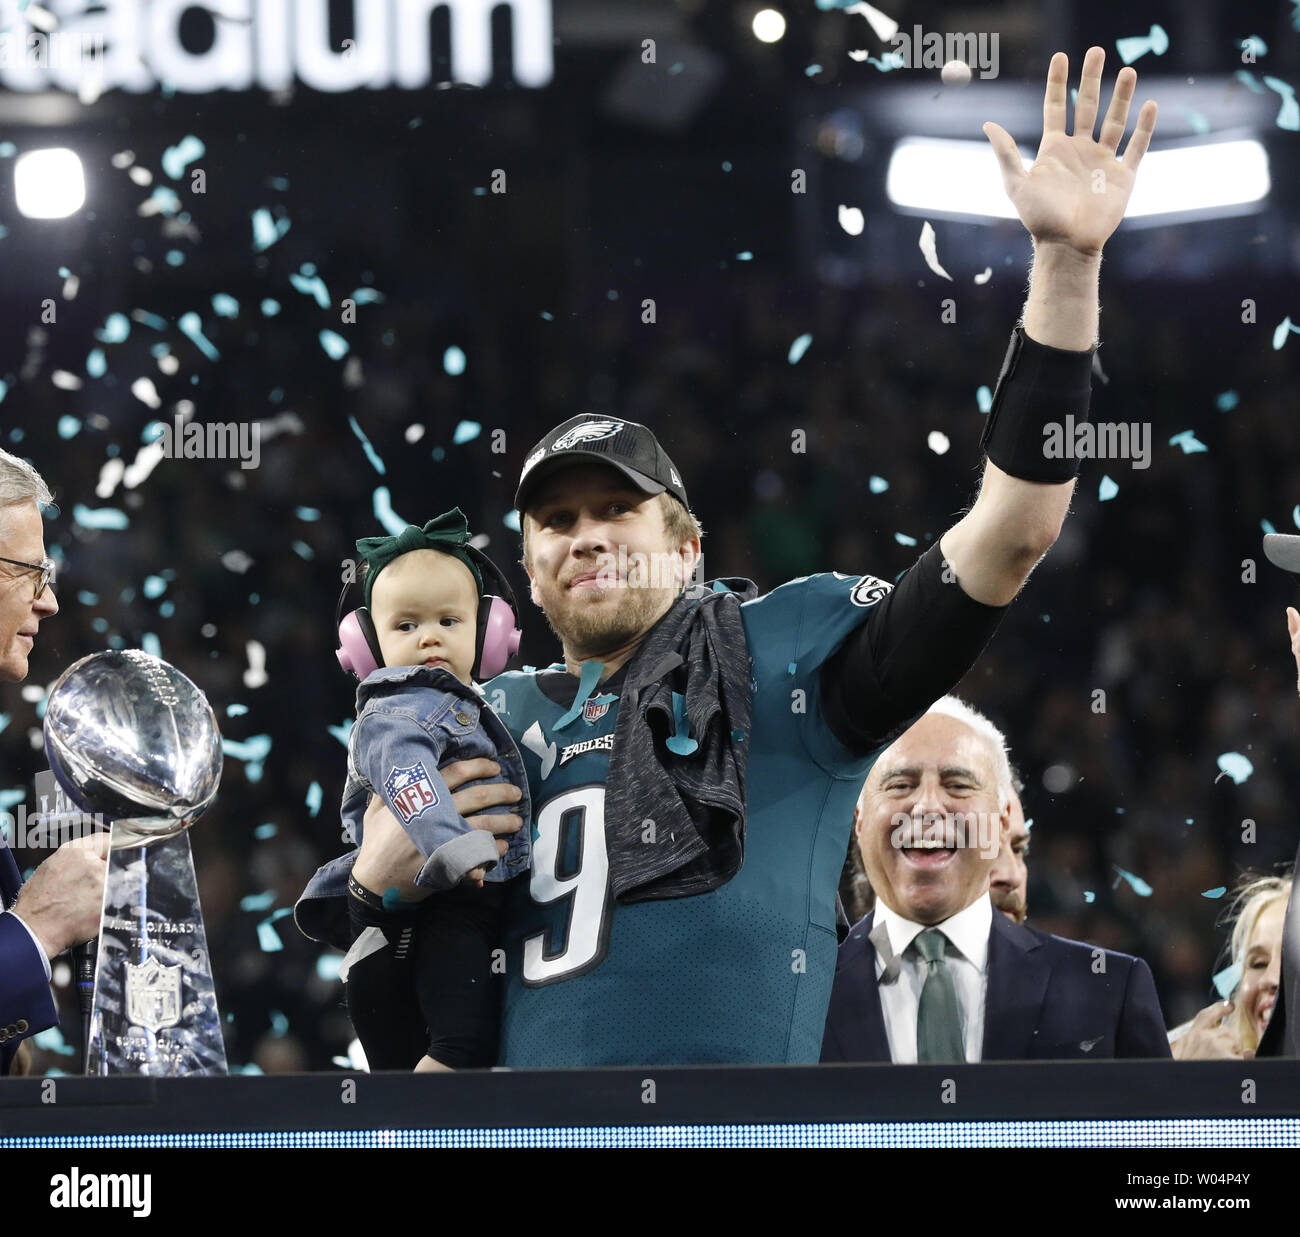 Philadelphia Eagles quarterback Nick Foles (9) waves as he holds his daughter, Lily James, after Super Bowl LII at U.S. Bank Stadium in Minneapolis, Minnesota on February 4, 2018.  The Philadelphia Eagles won 41-33 for their first Super Bowl in 52 years.  Photo by John Angelillo/UPI - Stock Image